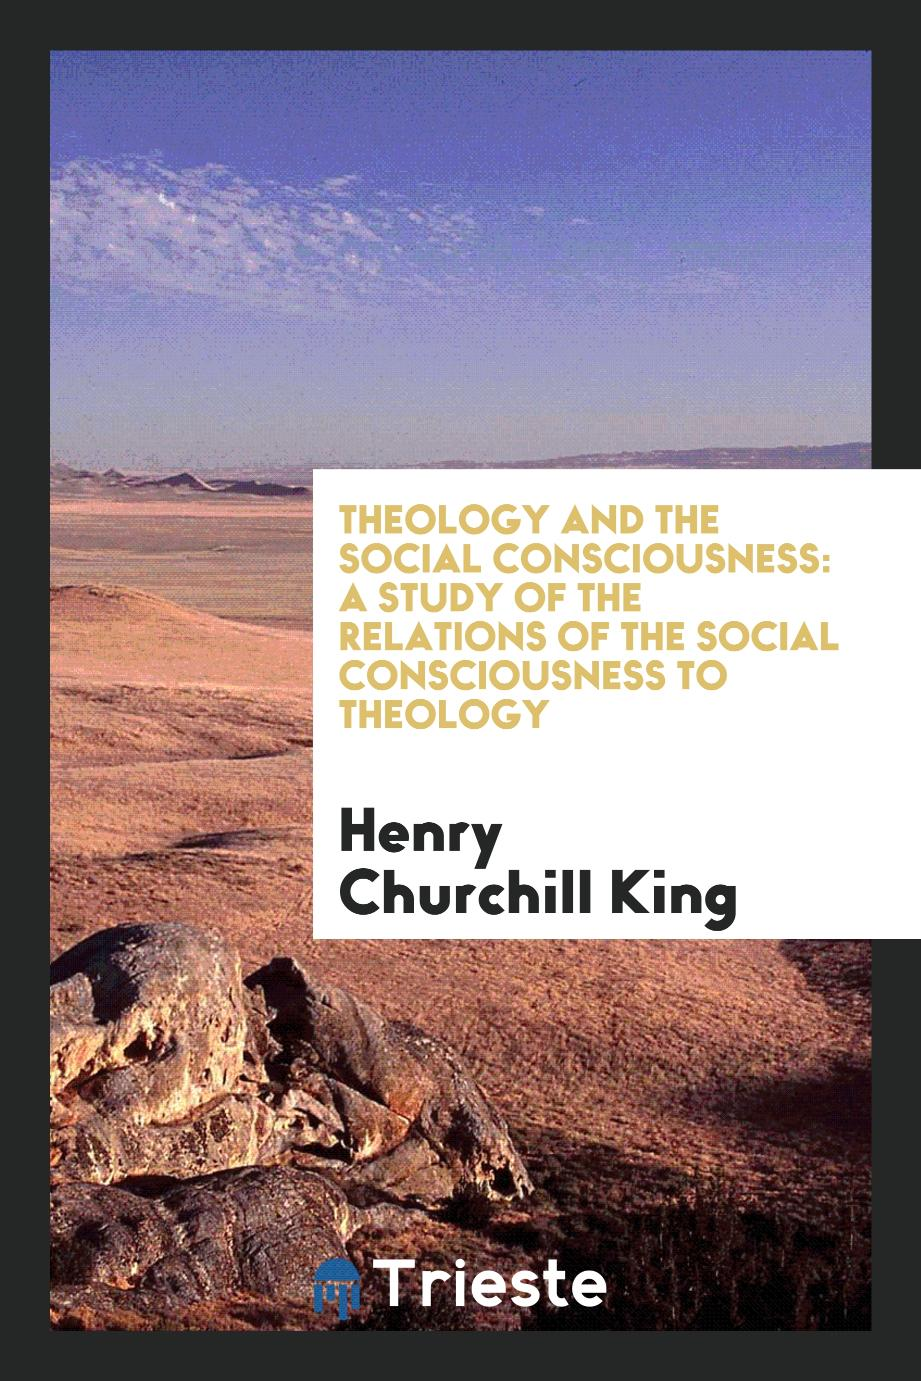 Theology and the social consciousness: a study of the relations of the social consciousness to theology